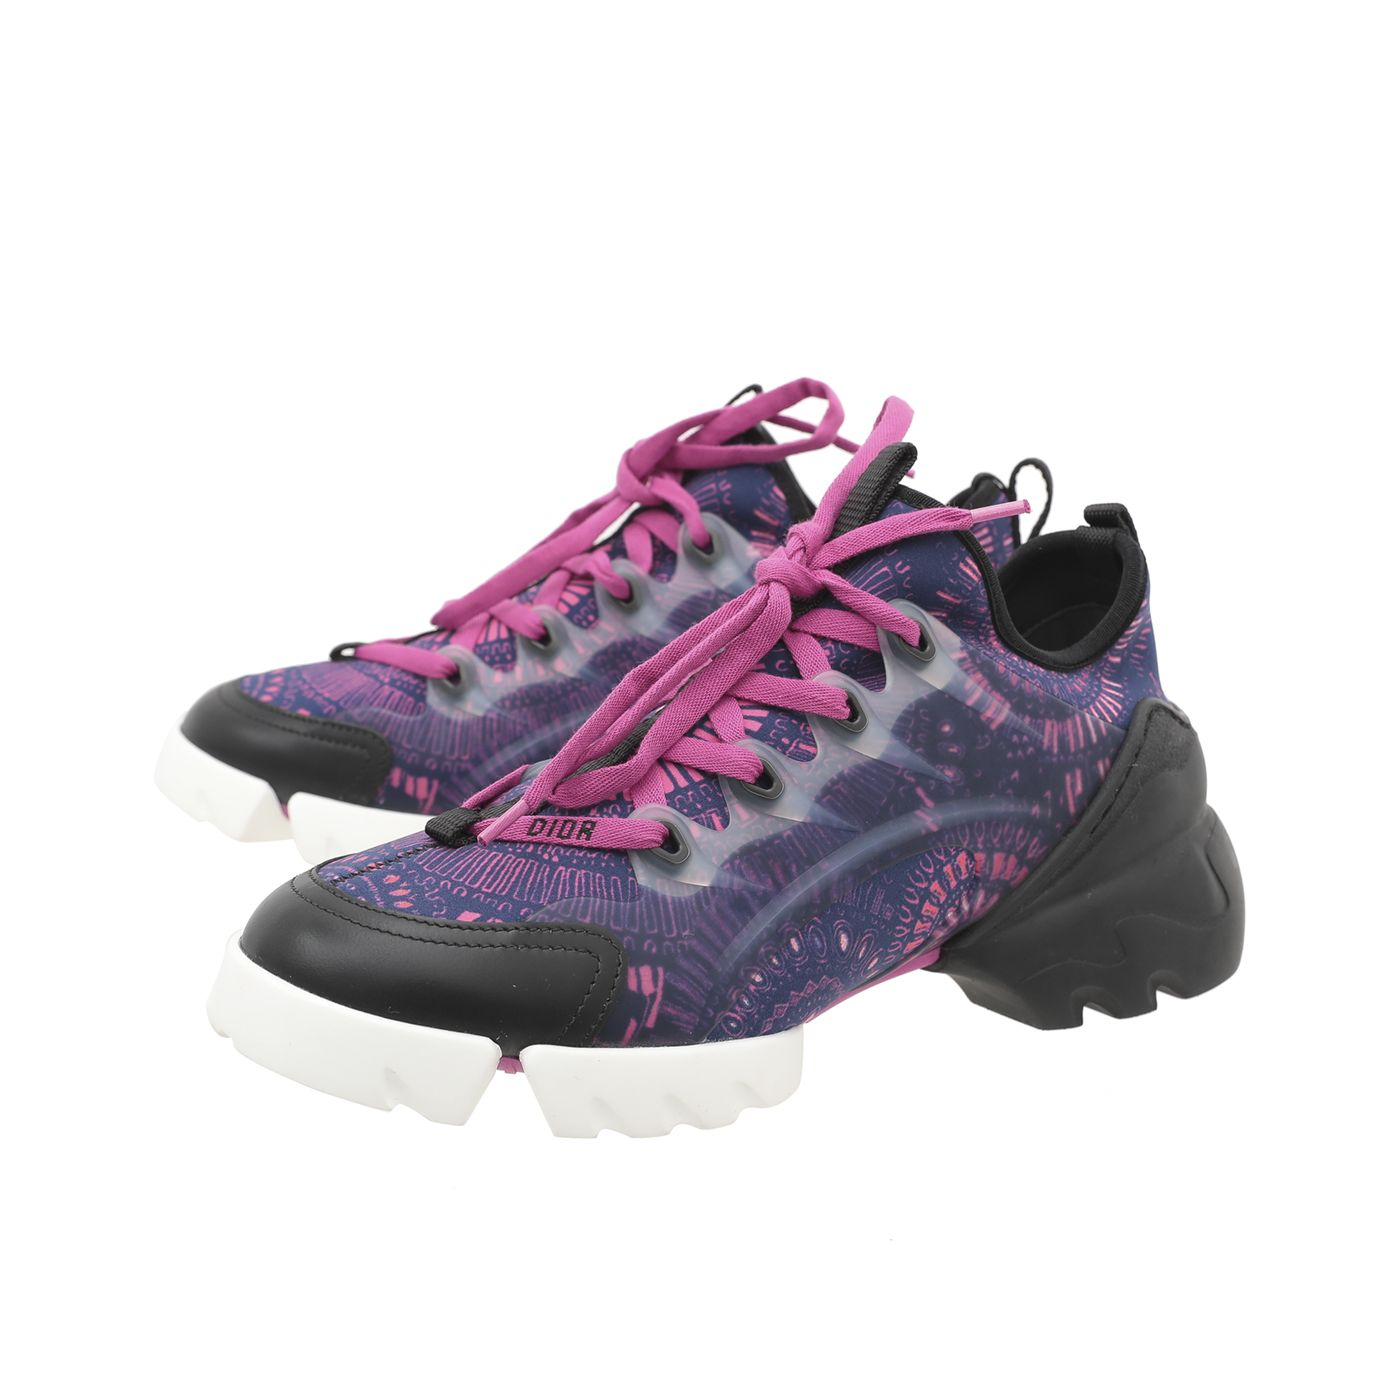 Christian Dior Tricolor D-Connect Fireworks Print Sneakers 37